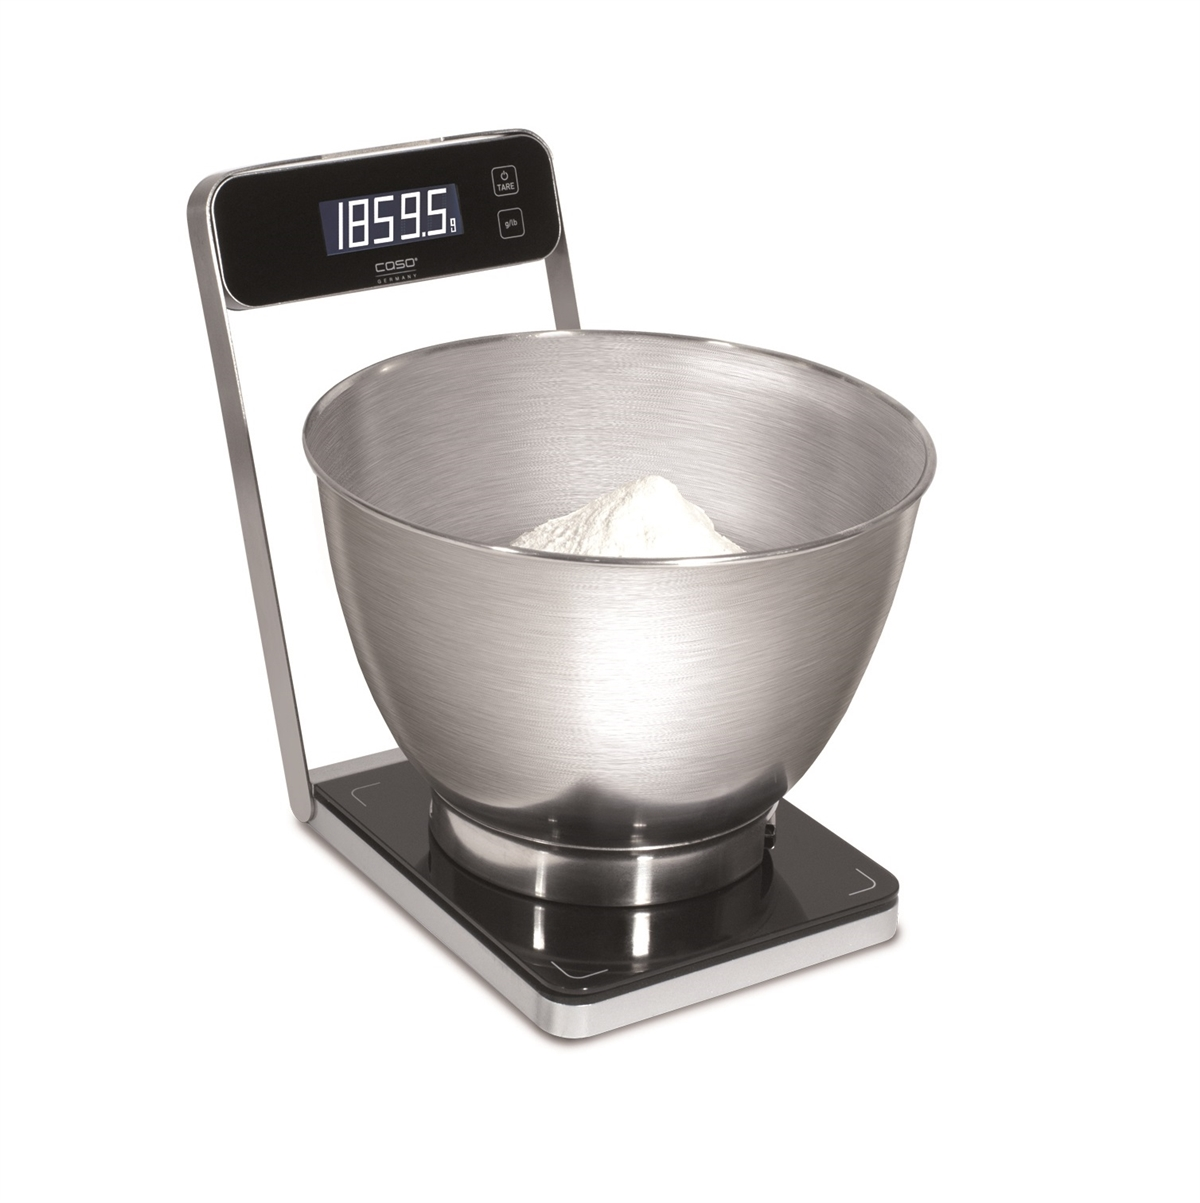 Digital kitchen scale with bowl